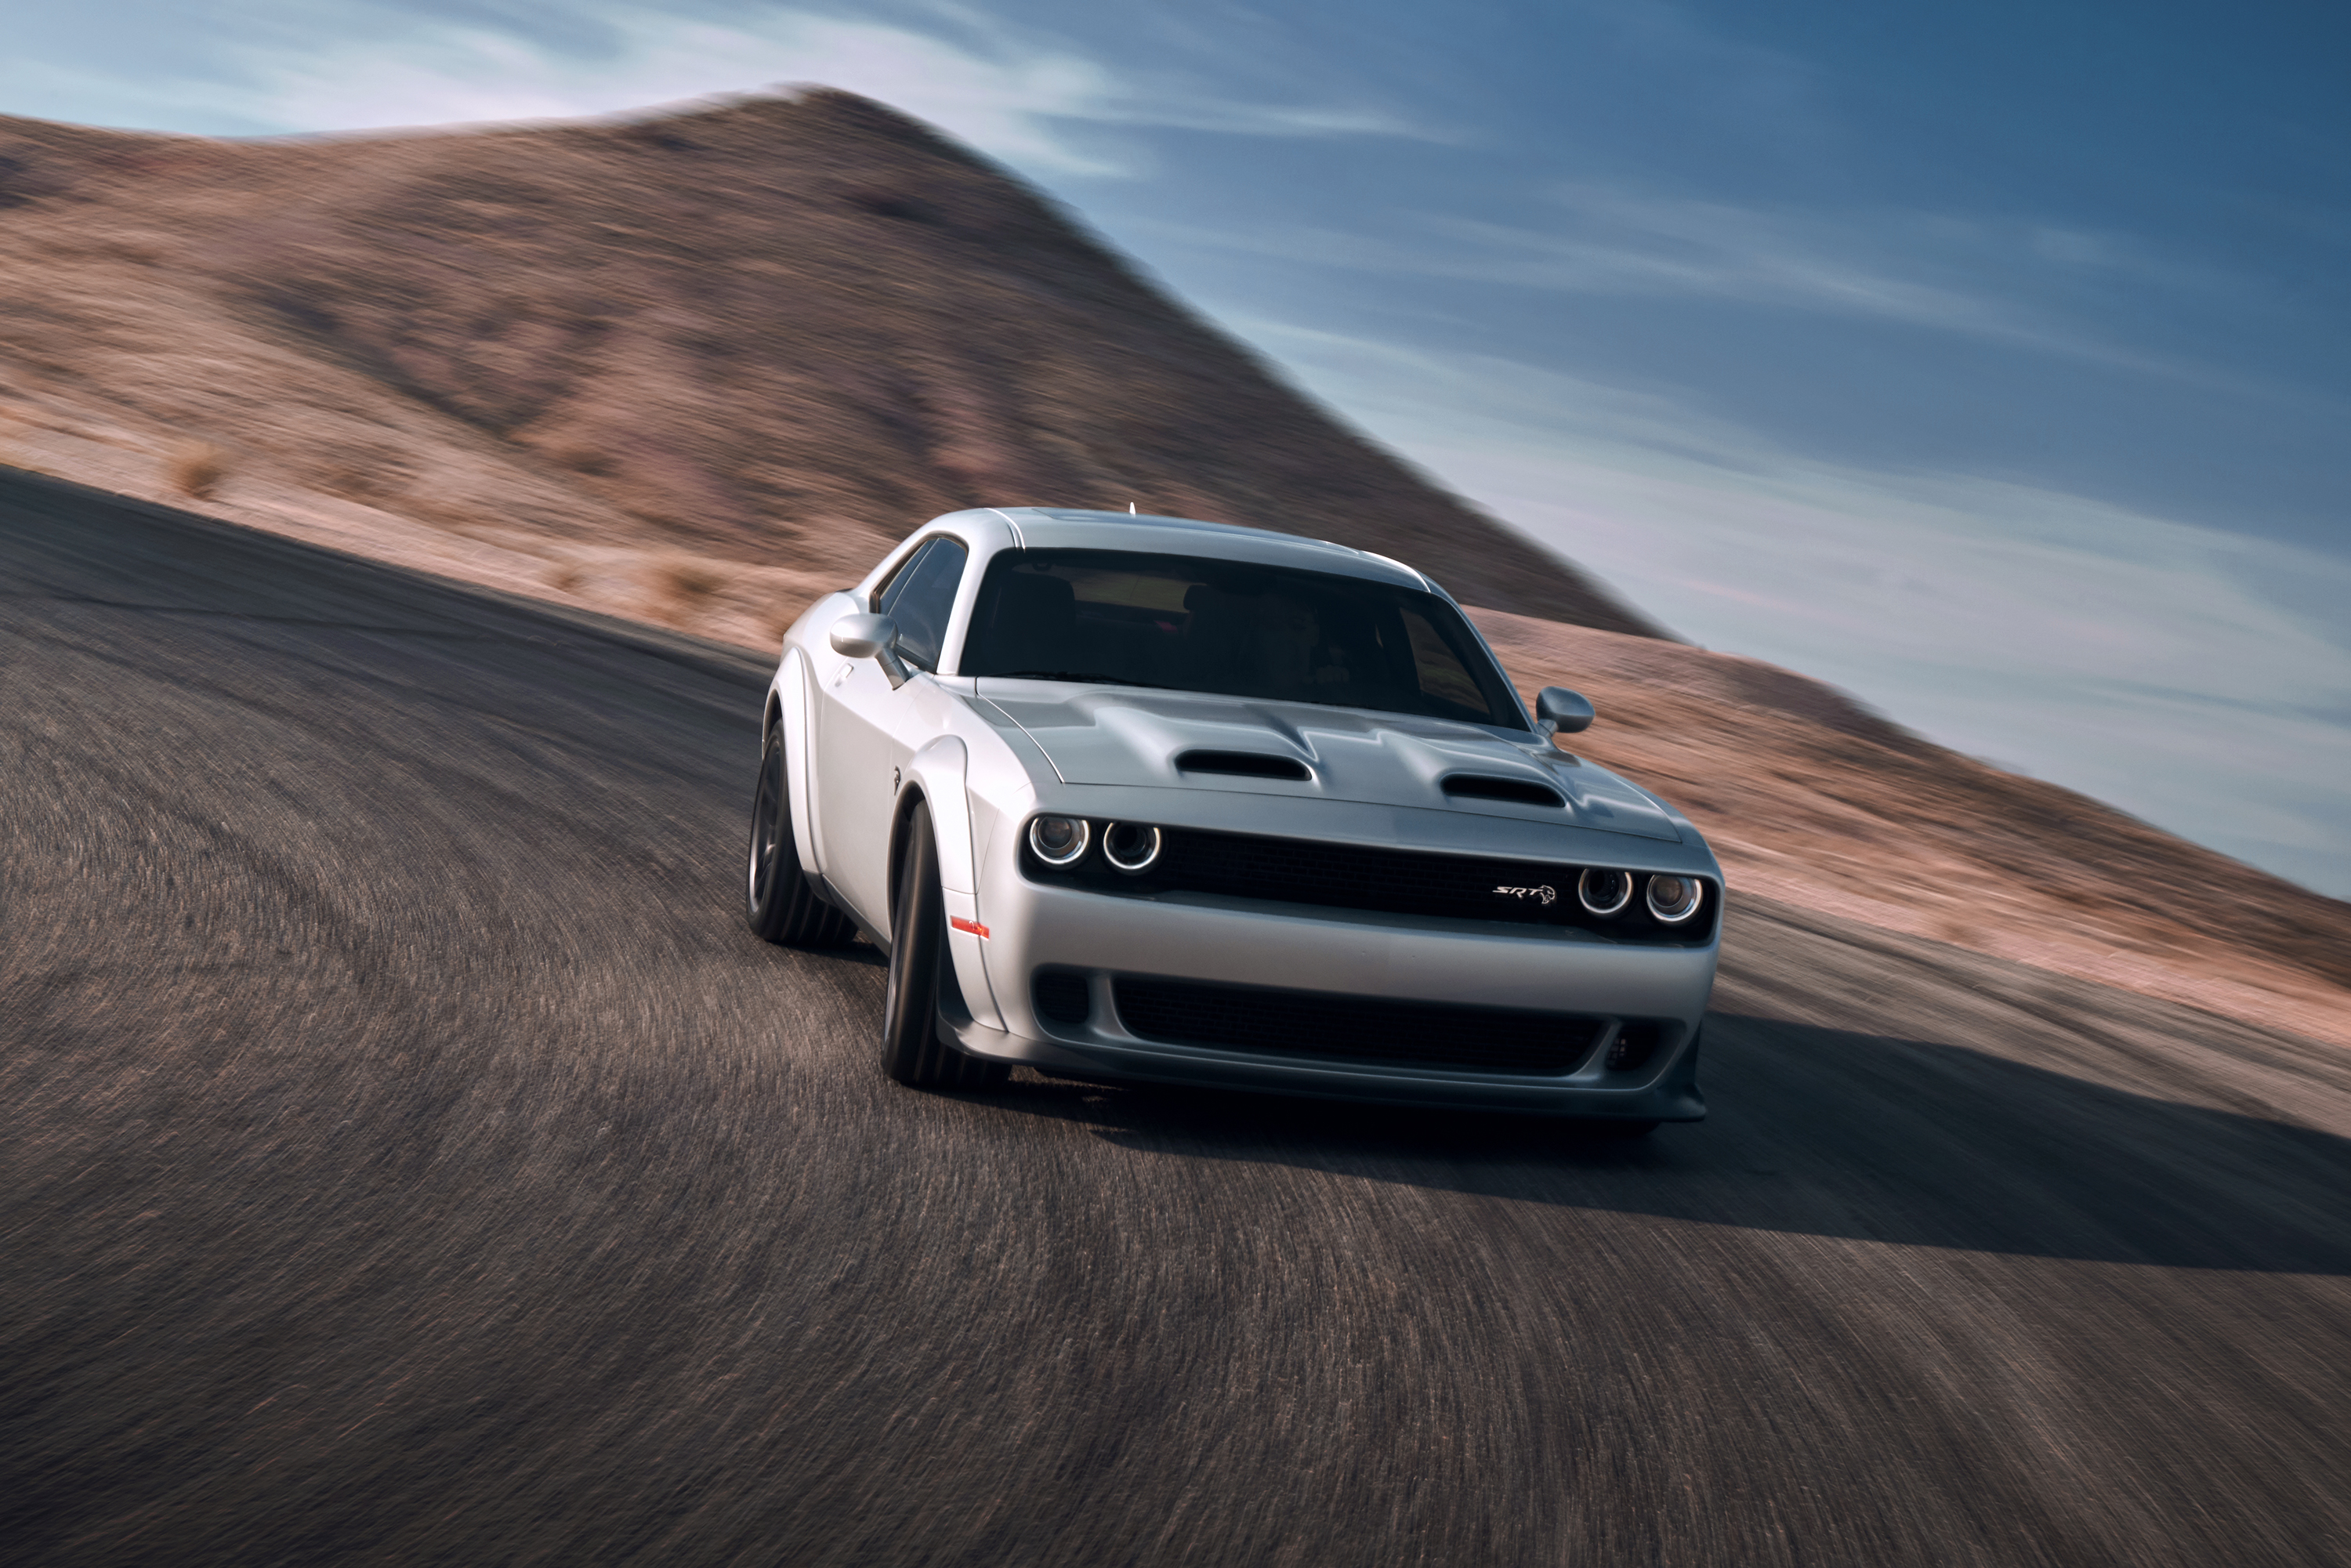 New Color Available For Challenger, Charger and 300: - Mopar